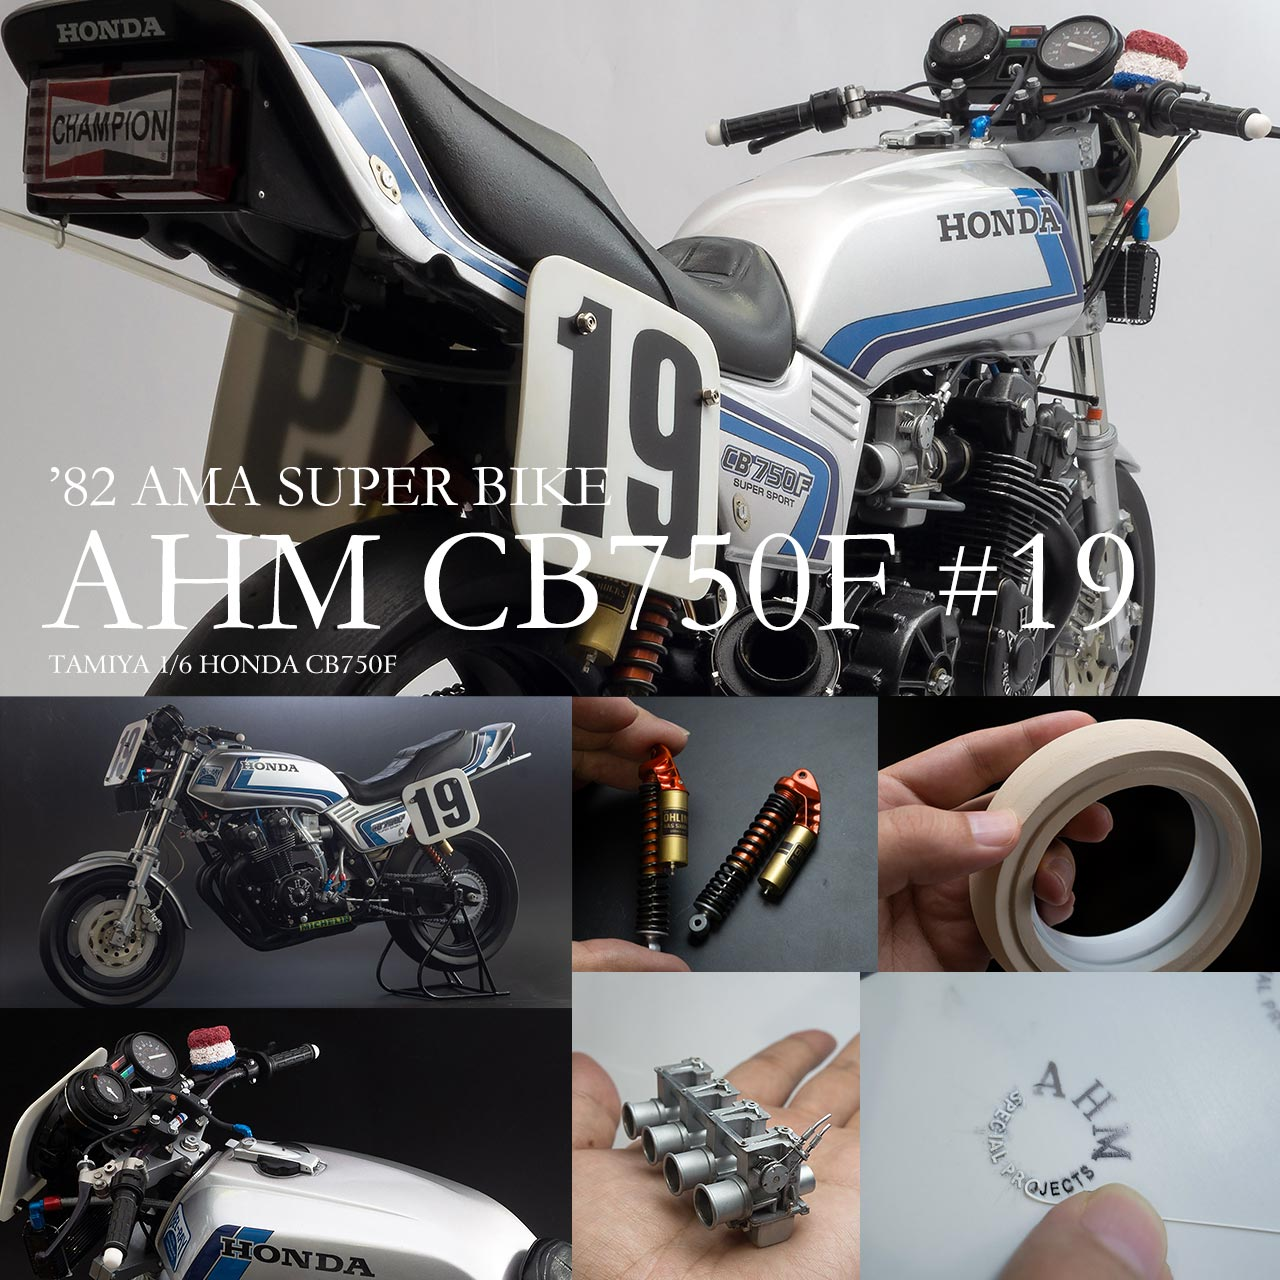 完成品ギャラリー 1/6 AHM CB750F '82 Freddie Spencer (Based on TAMIYA)[AHM CB750F フレディ・スペンサー]